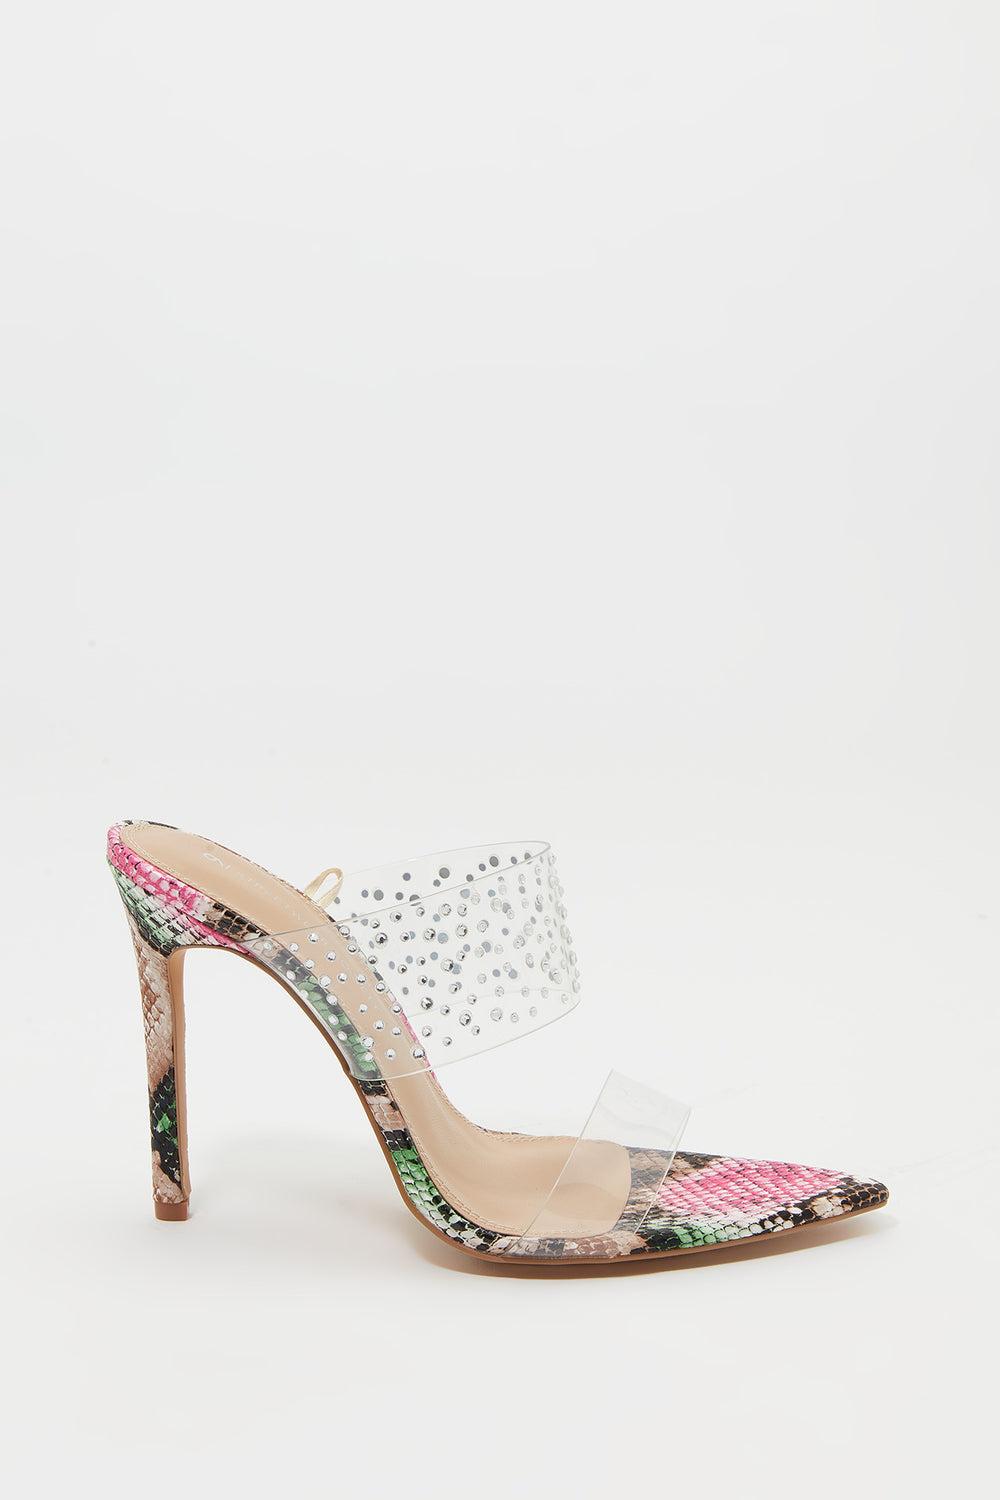 Rhinestone Clear Strap Stiletto Mule Multi